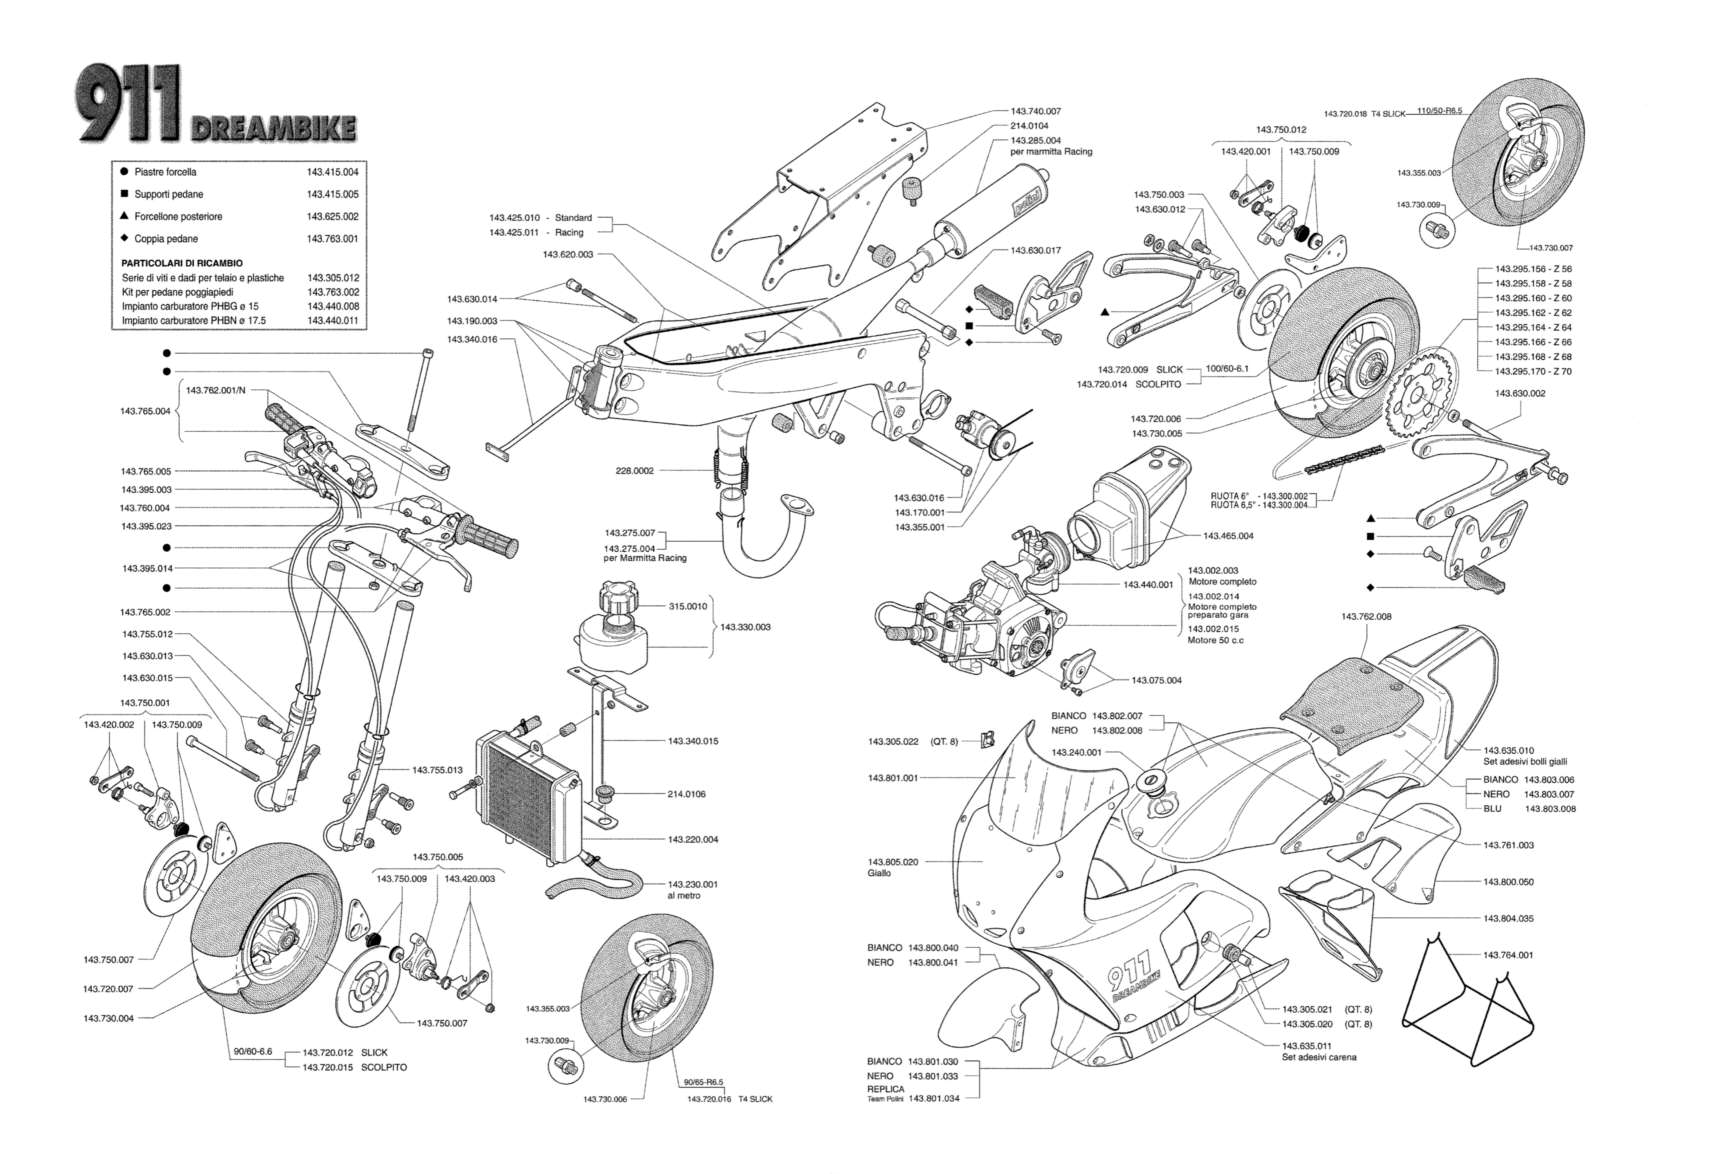 Polini 911 Exploded Diagram